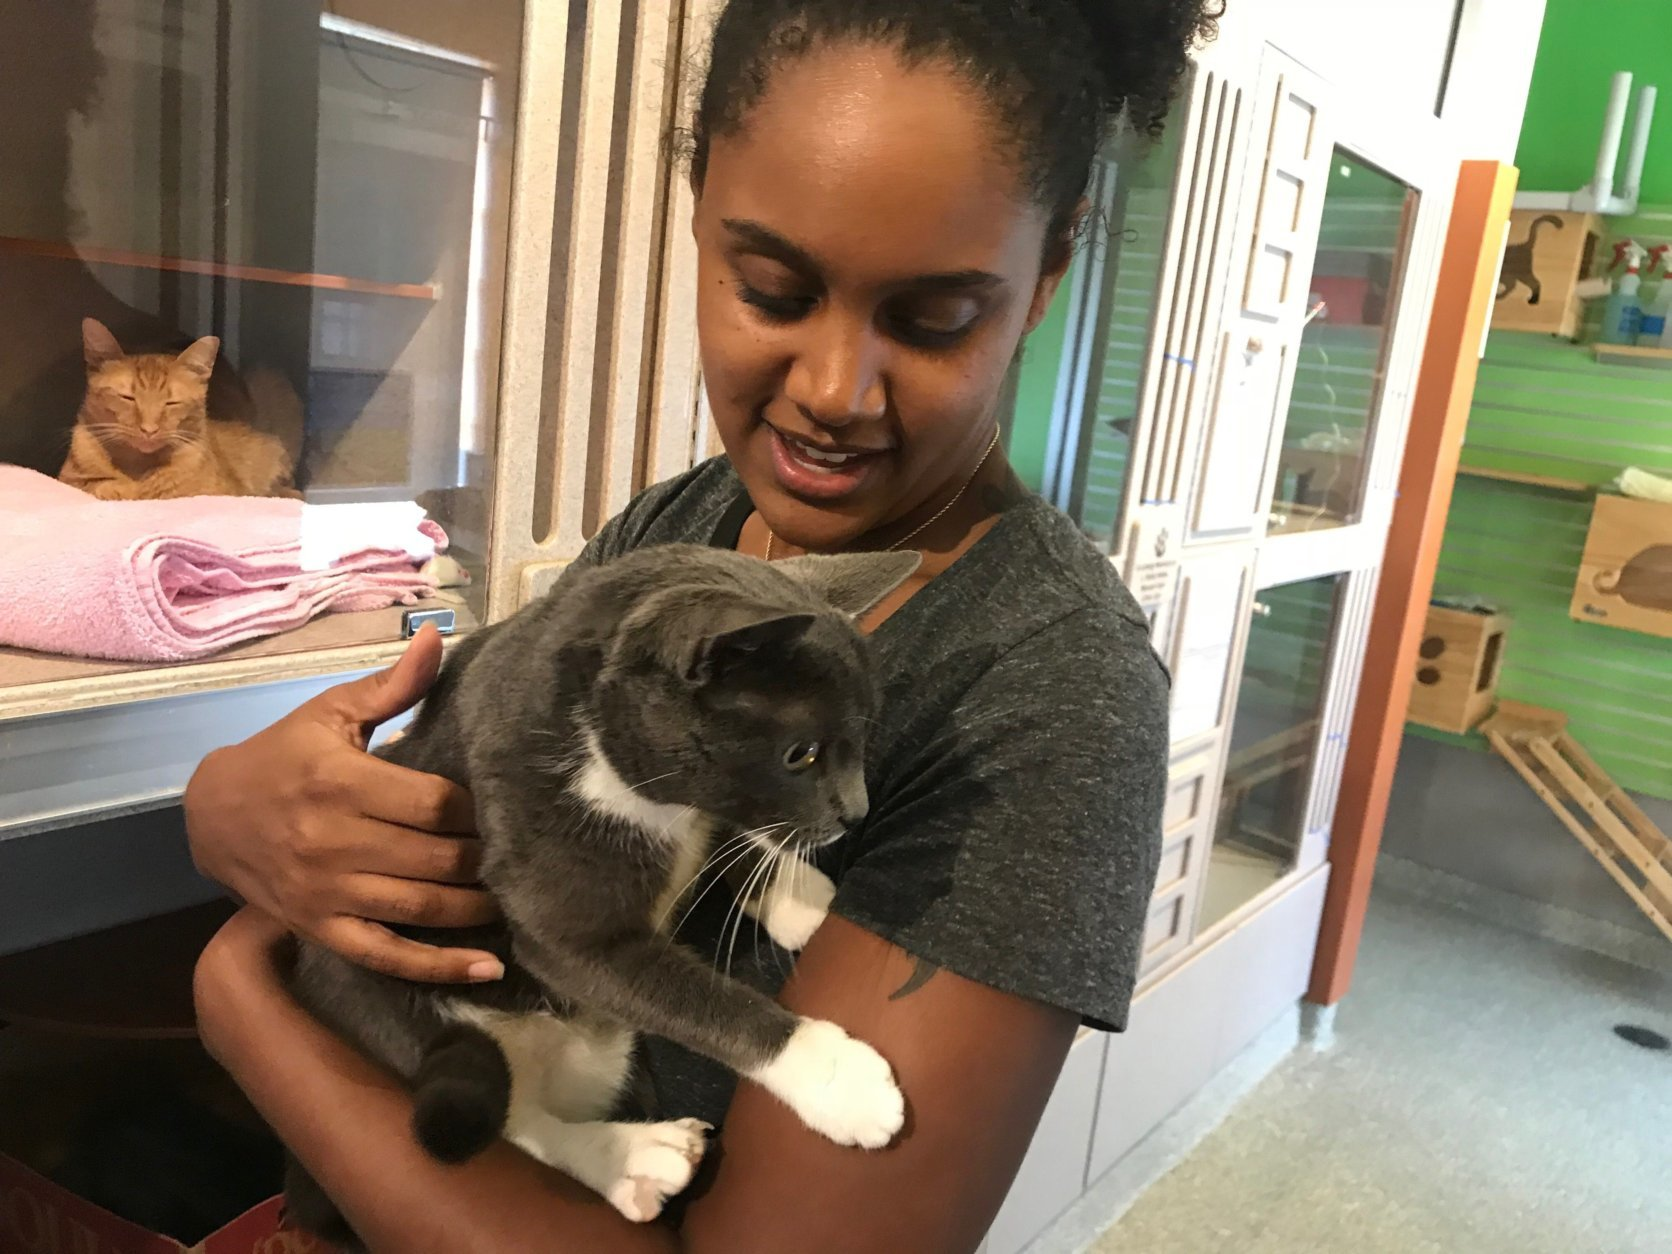 Lady, a one-year-old gray cat with white feet and a white chest, found a new home in College Park, Maryland, after she was adopted at the Humane Rescue Alliance in D.C. (WTOP/Dick Uliano)